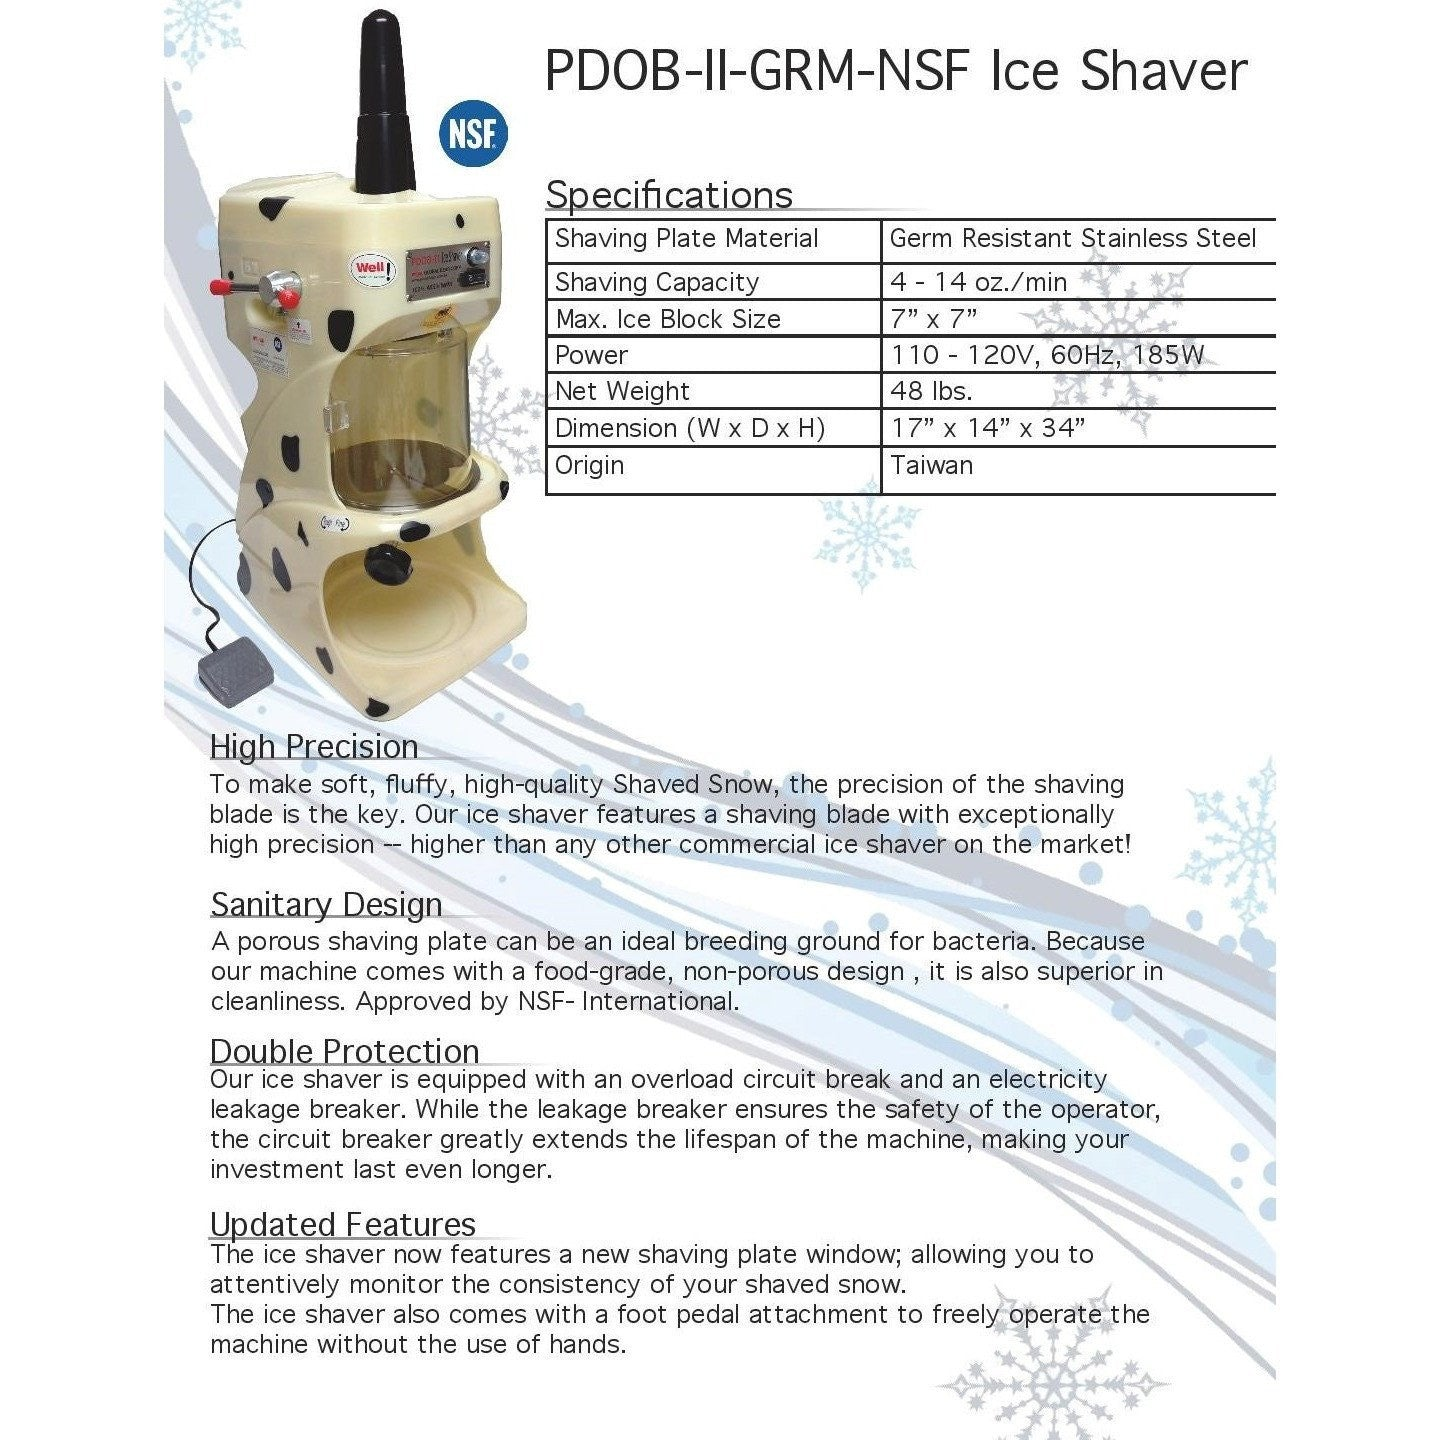 Shaved Ice Machine - PDOB-II-GRM-NSF Ice Shaver - IcySkyy